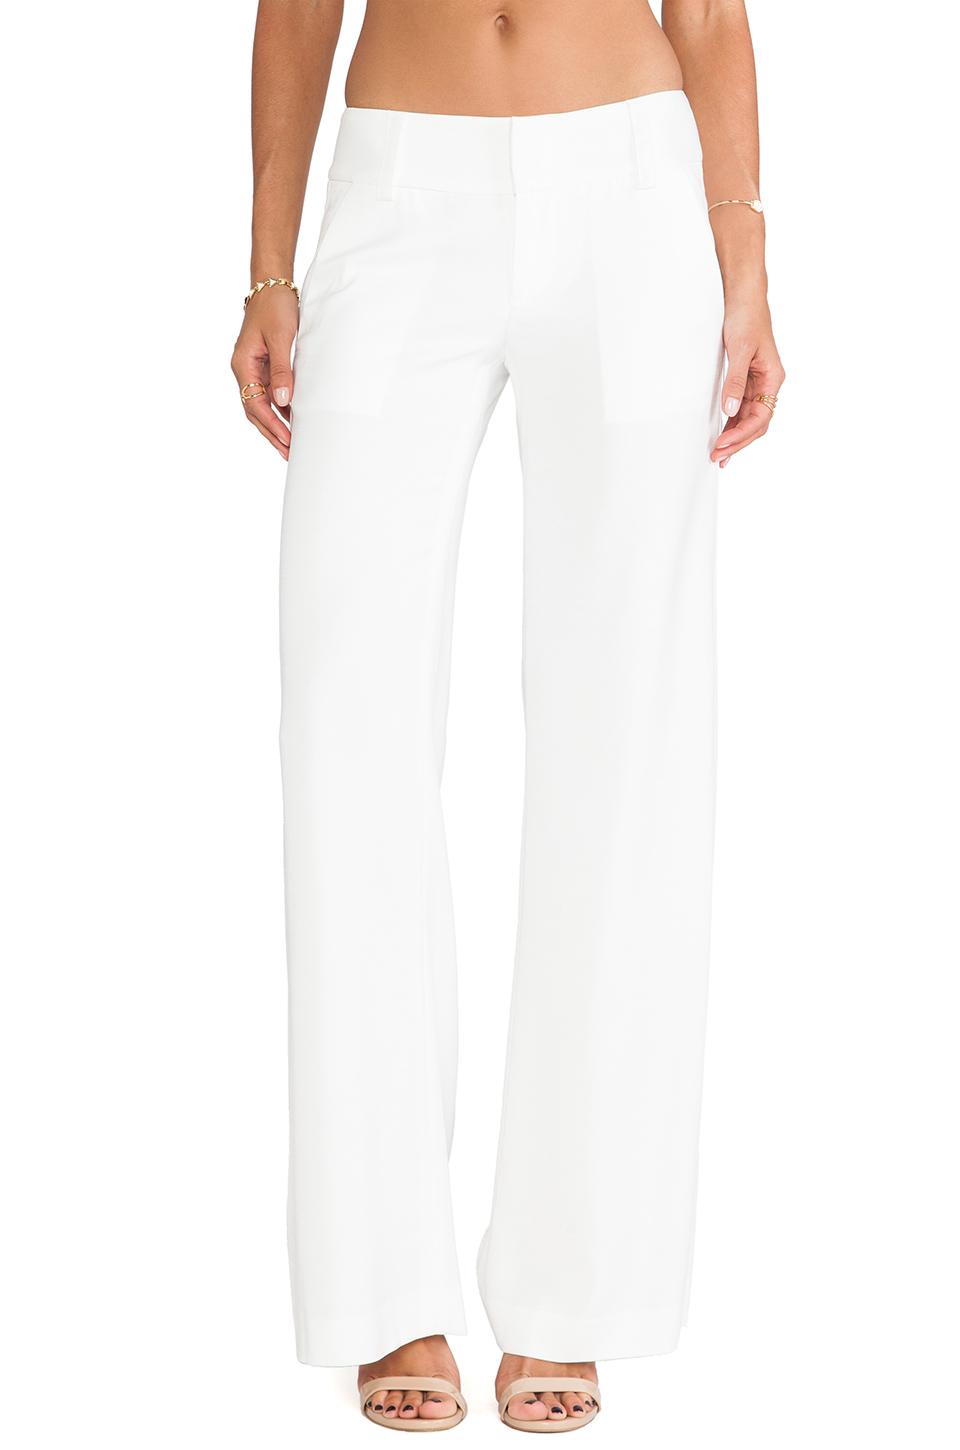 Alice   Olivia Eric Pant in White from REVOLVEclothing.com